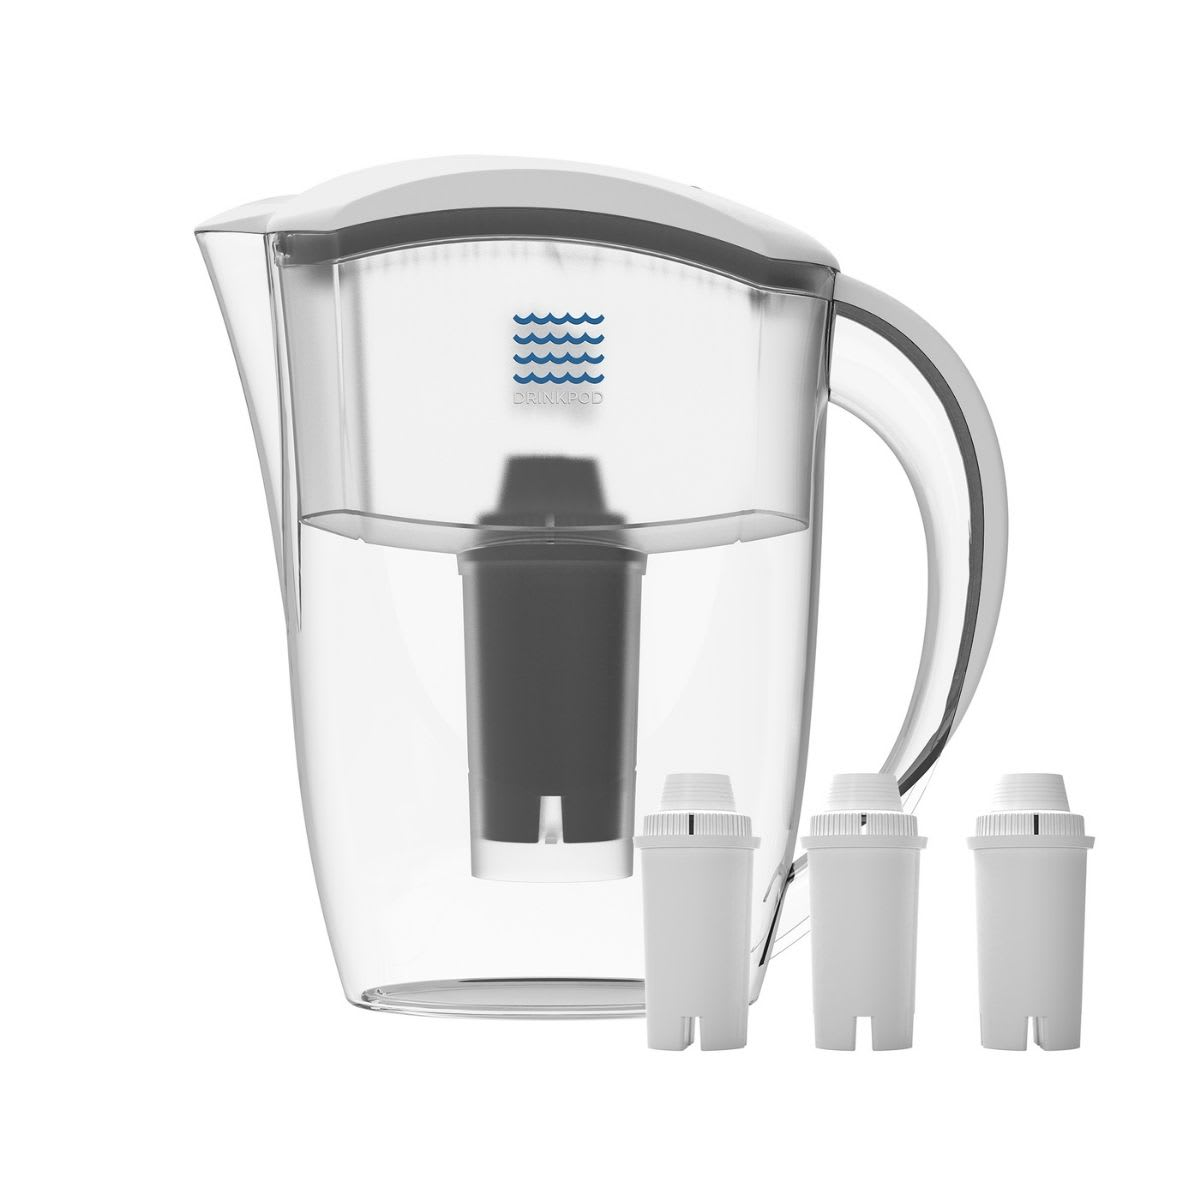 Water pitcher with white top. Comes with three water filters.